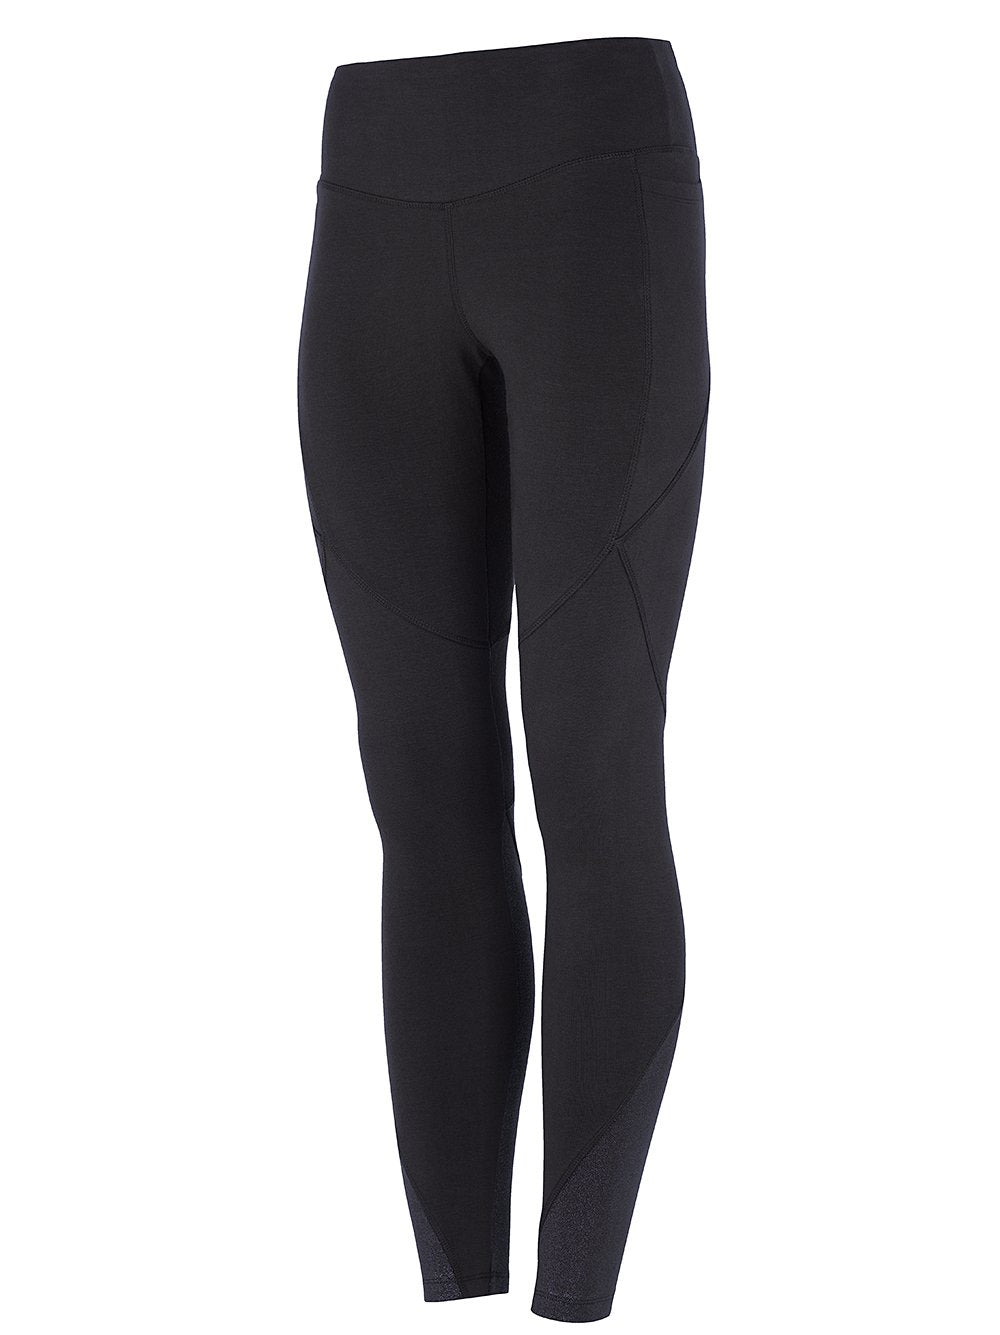 High Waist Glamour Legging Black